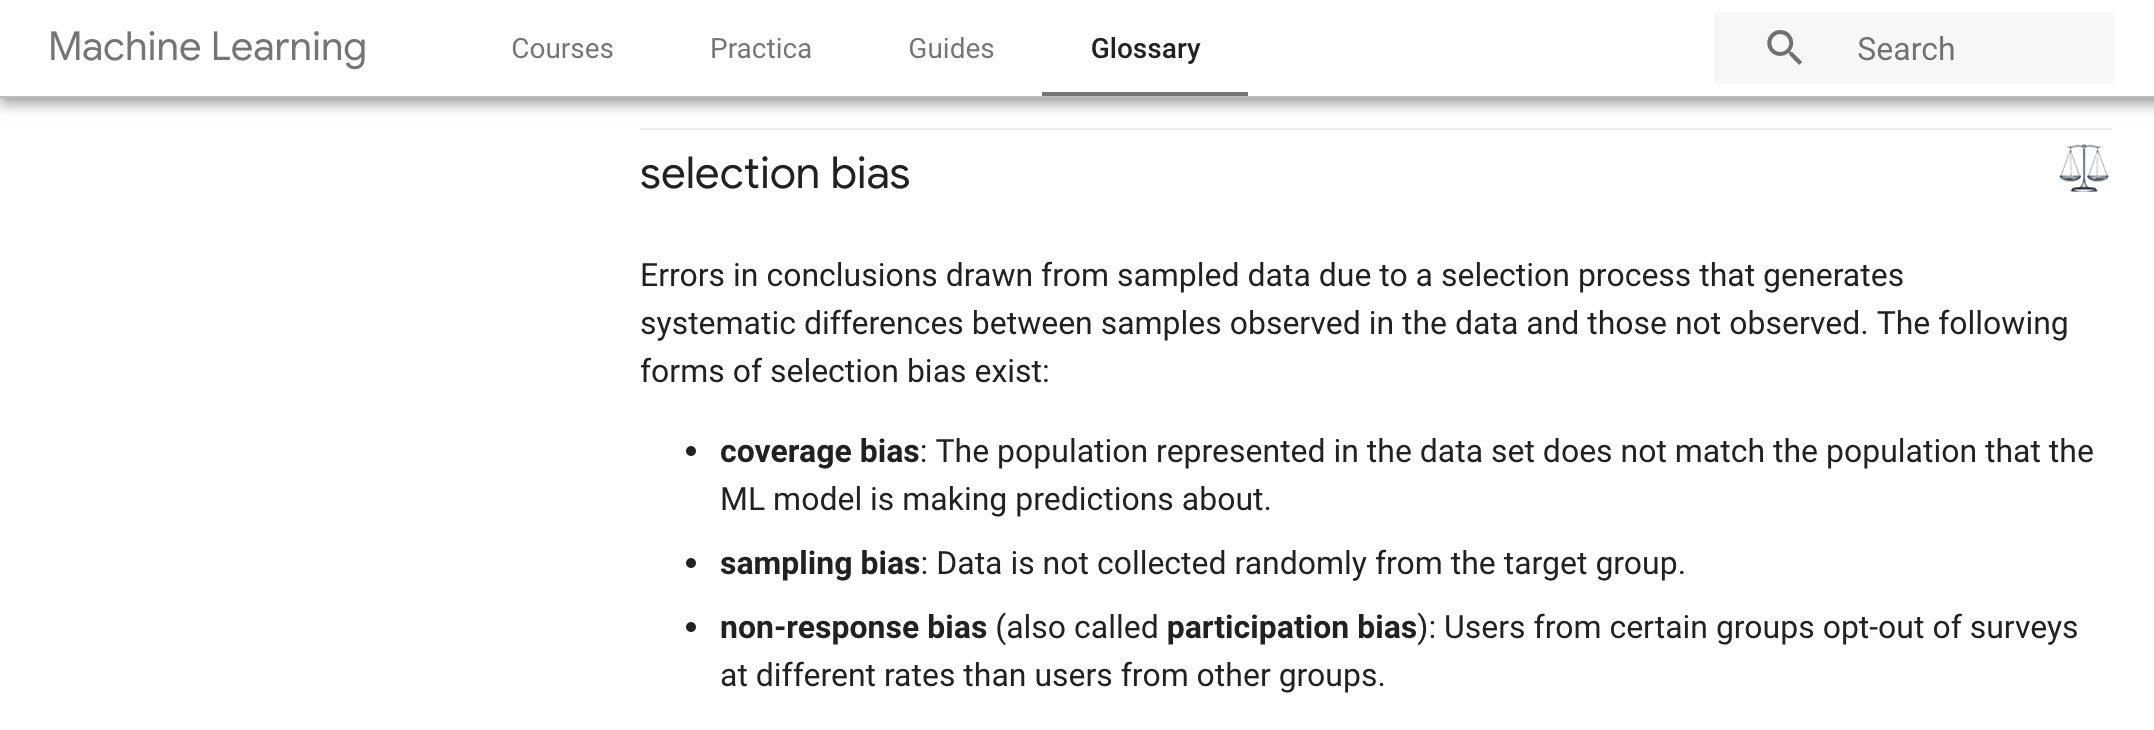 Google Machine Learning Glossary